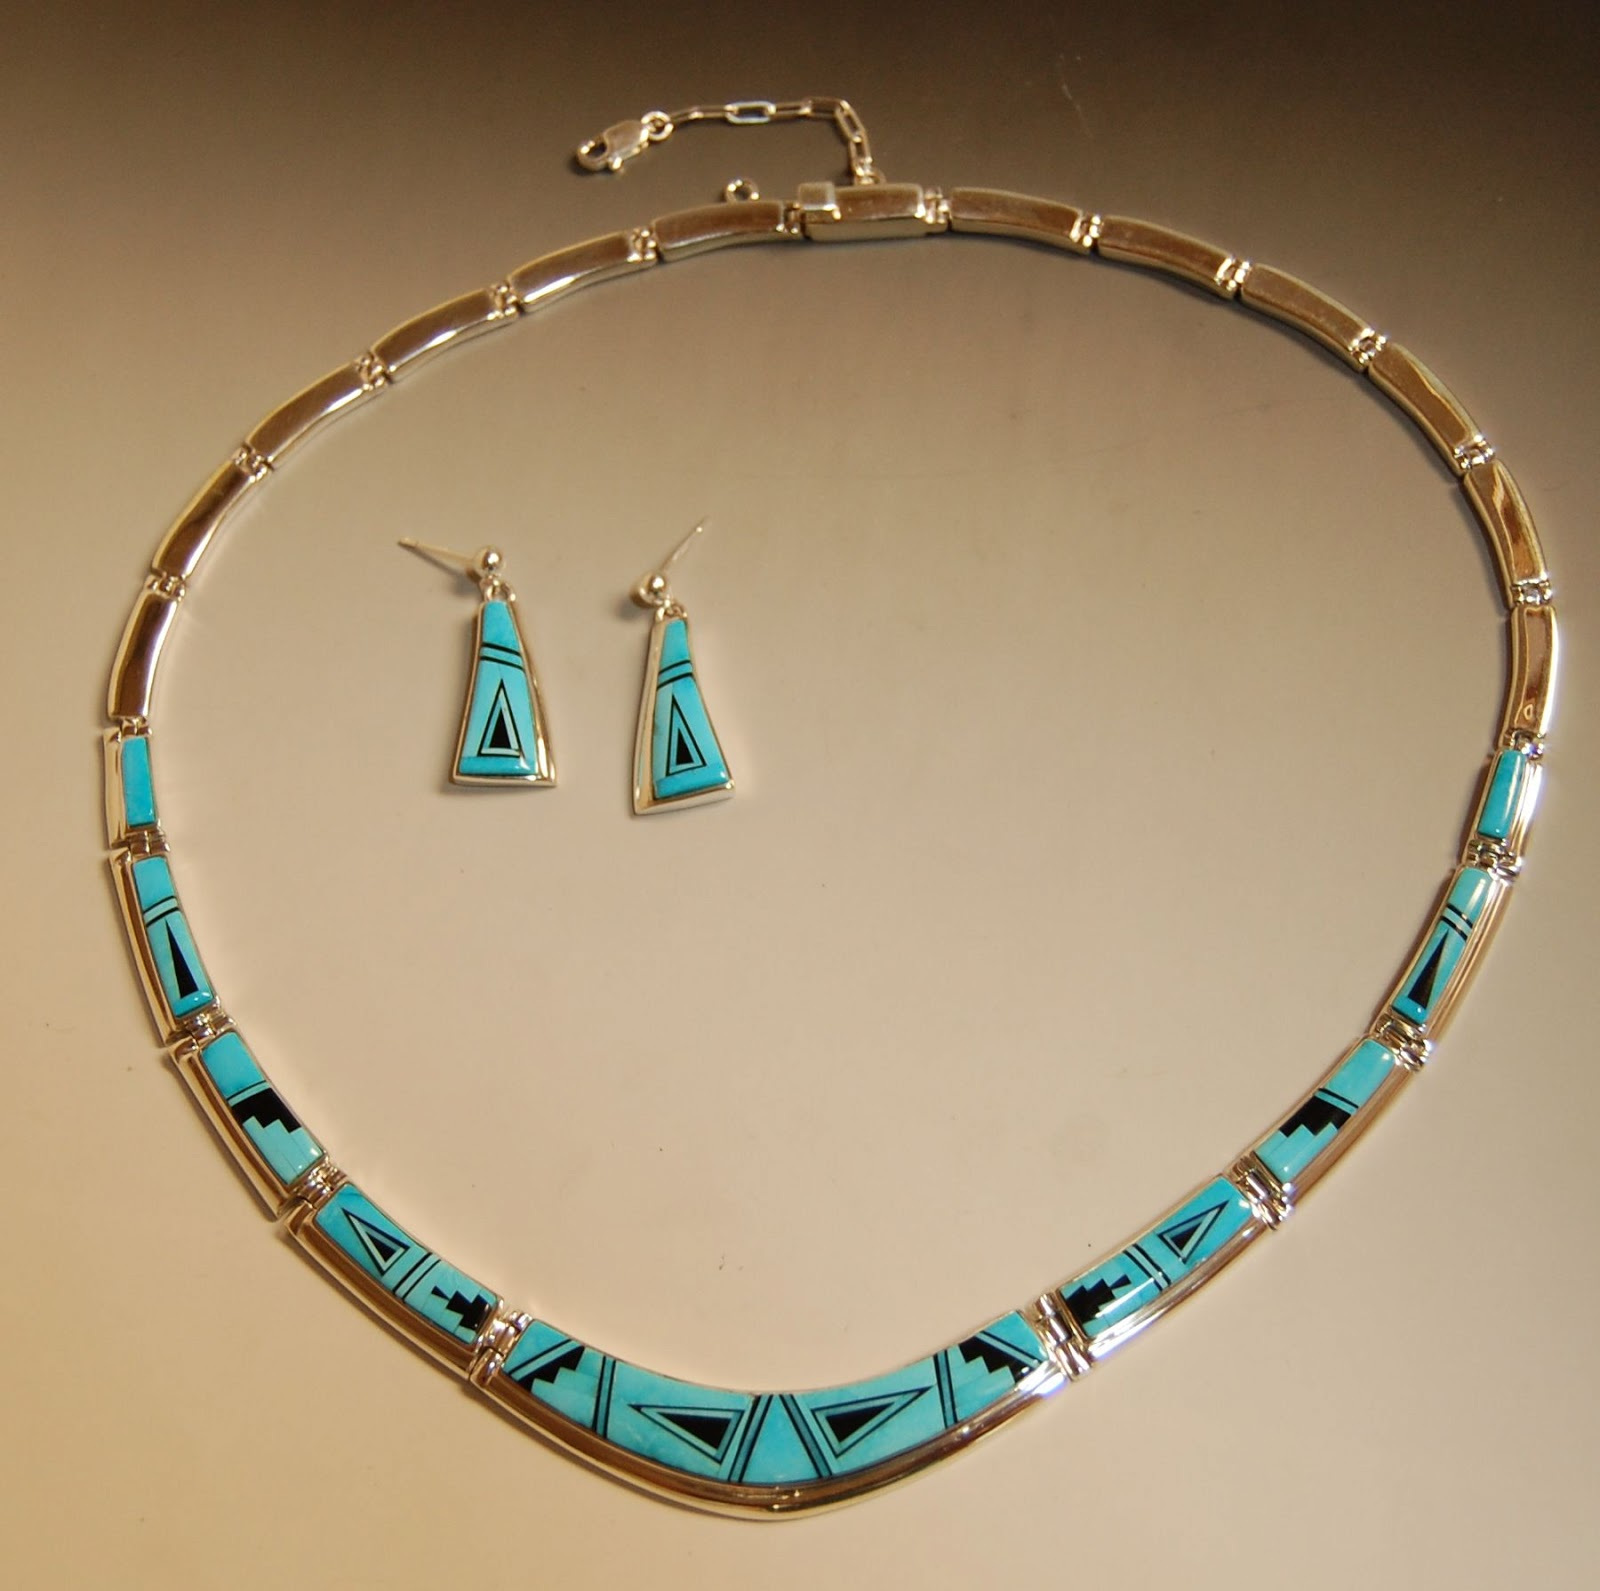 native hand gold jewelry american dsc jewellery made wichita